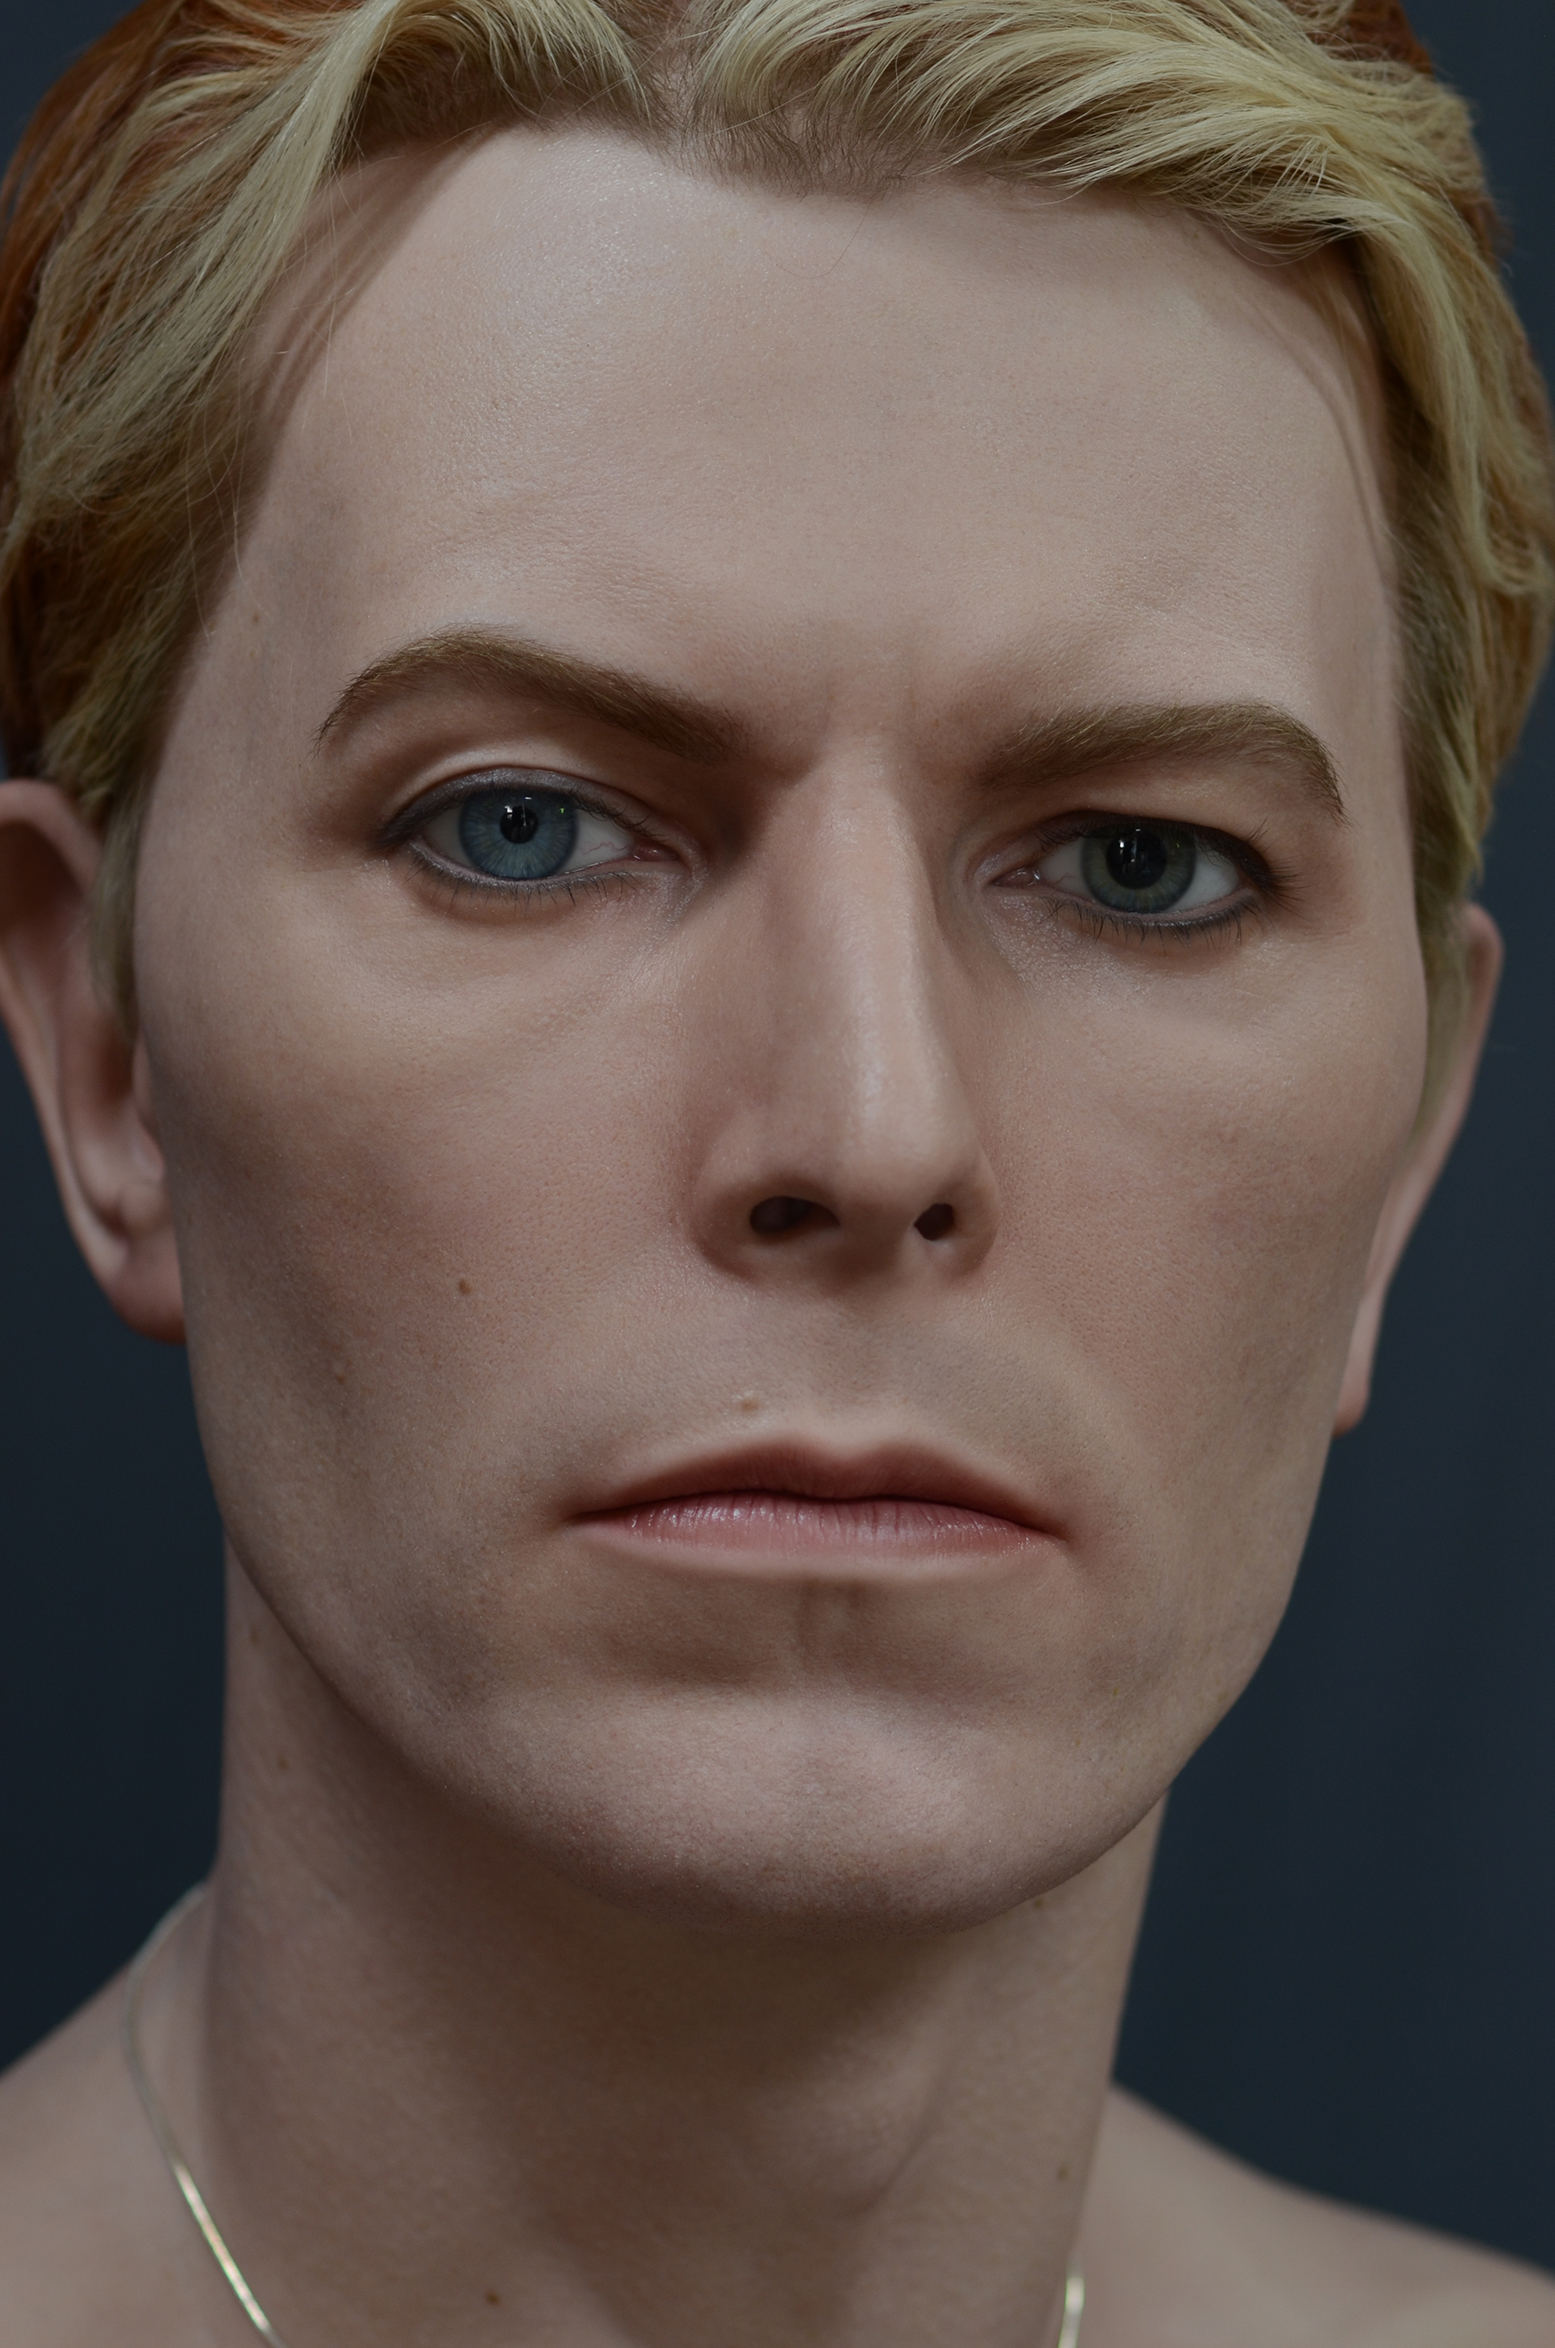 David Bowie (front view)